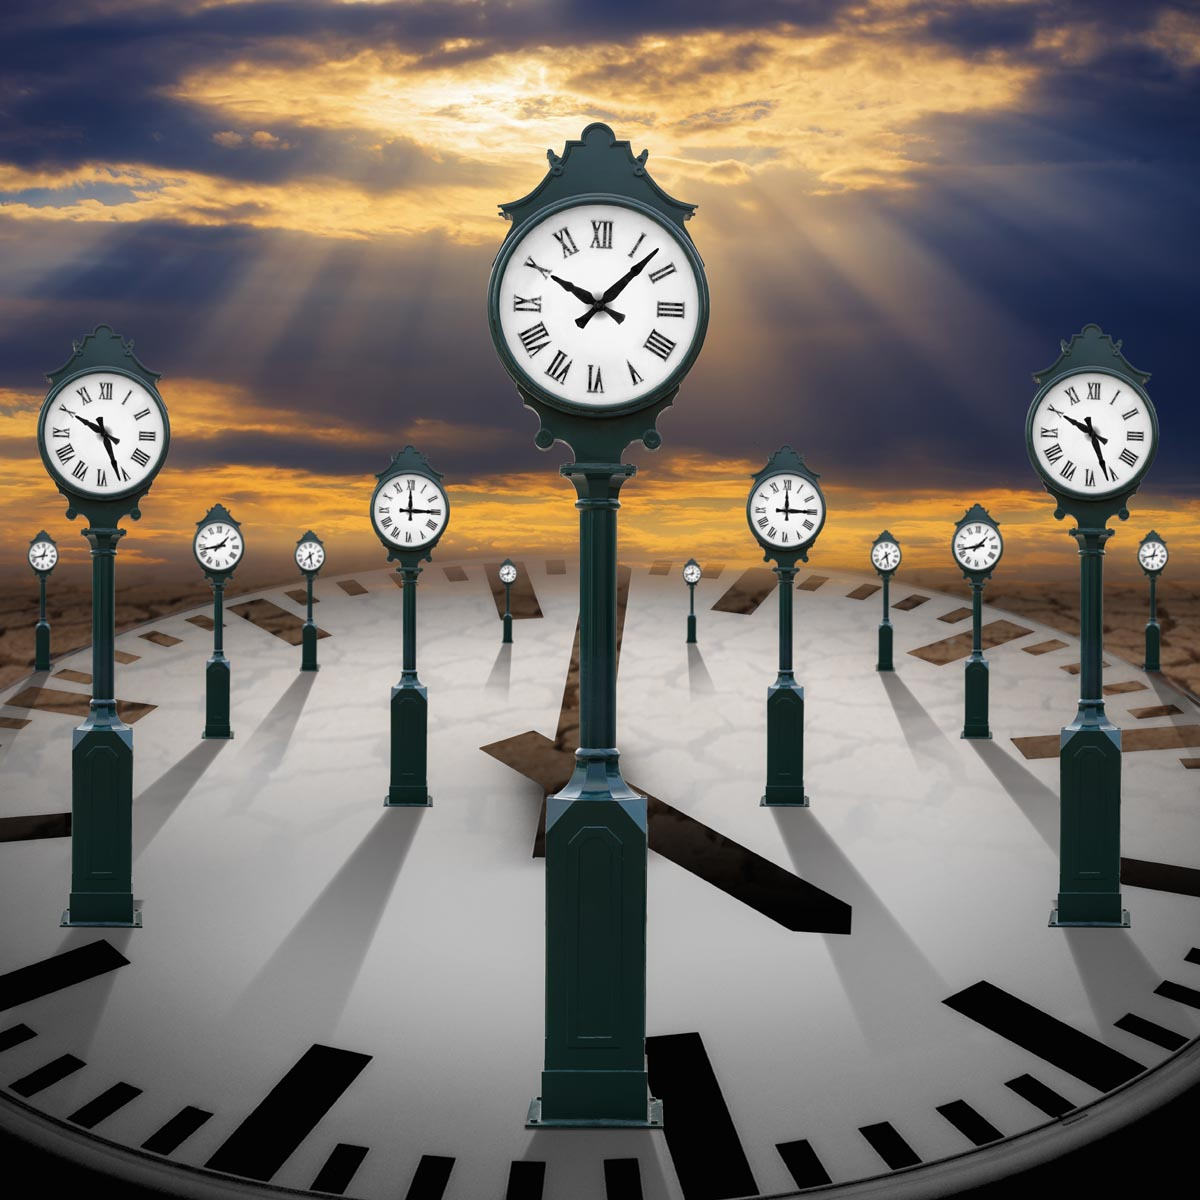 Can time management produce wisdom, joy and gladness?